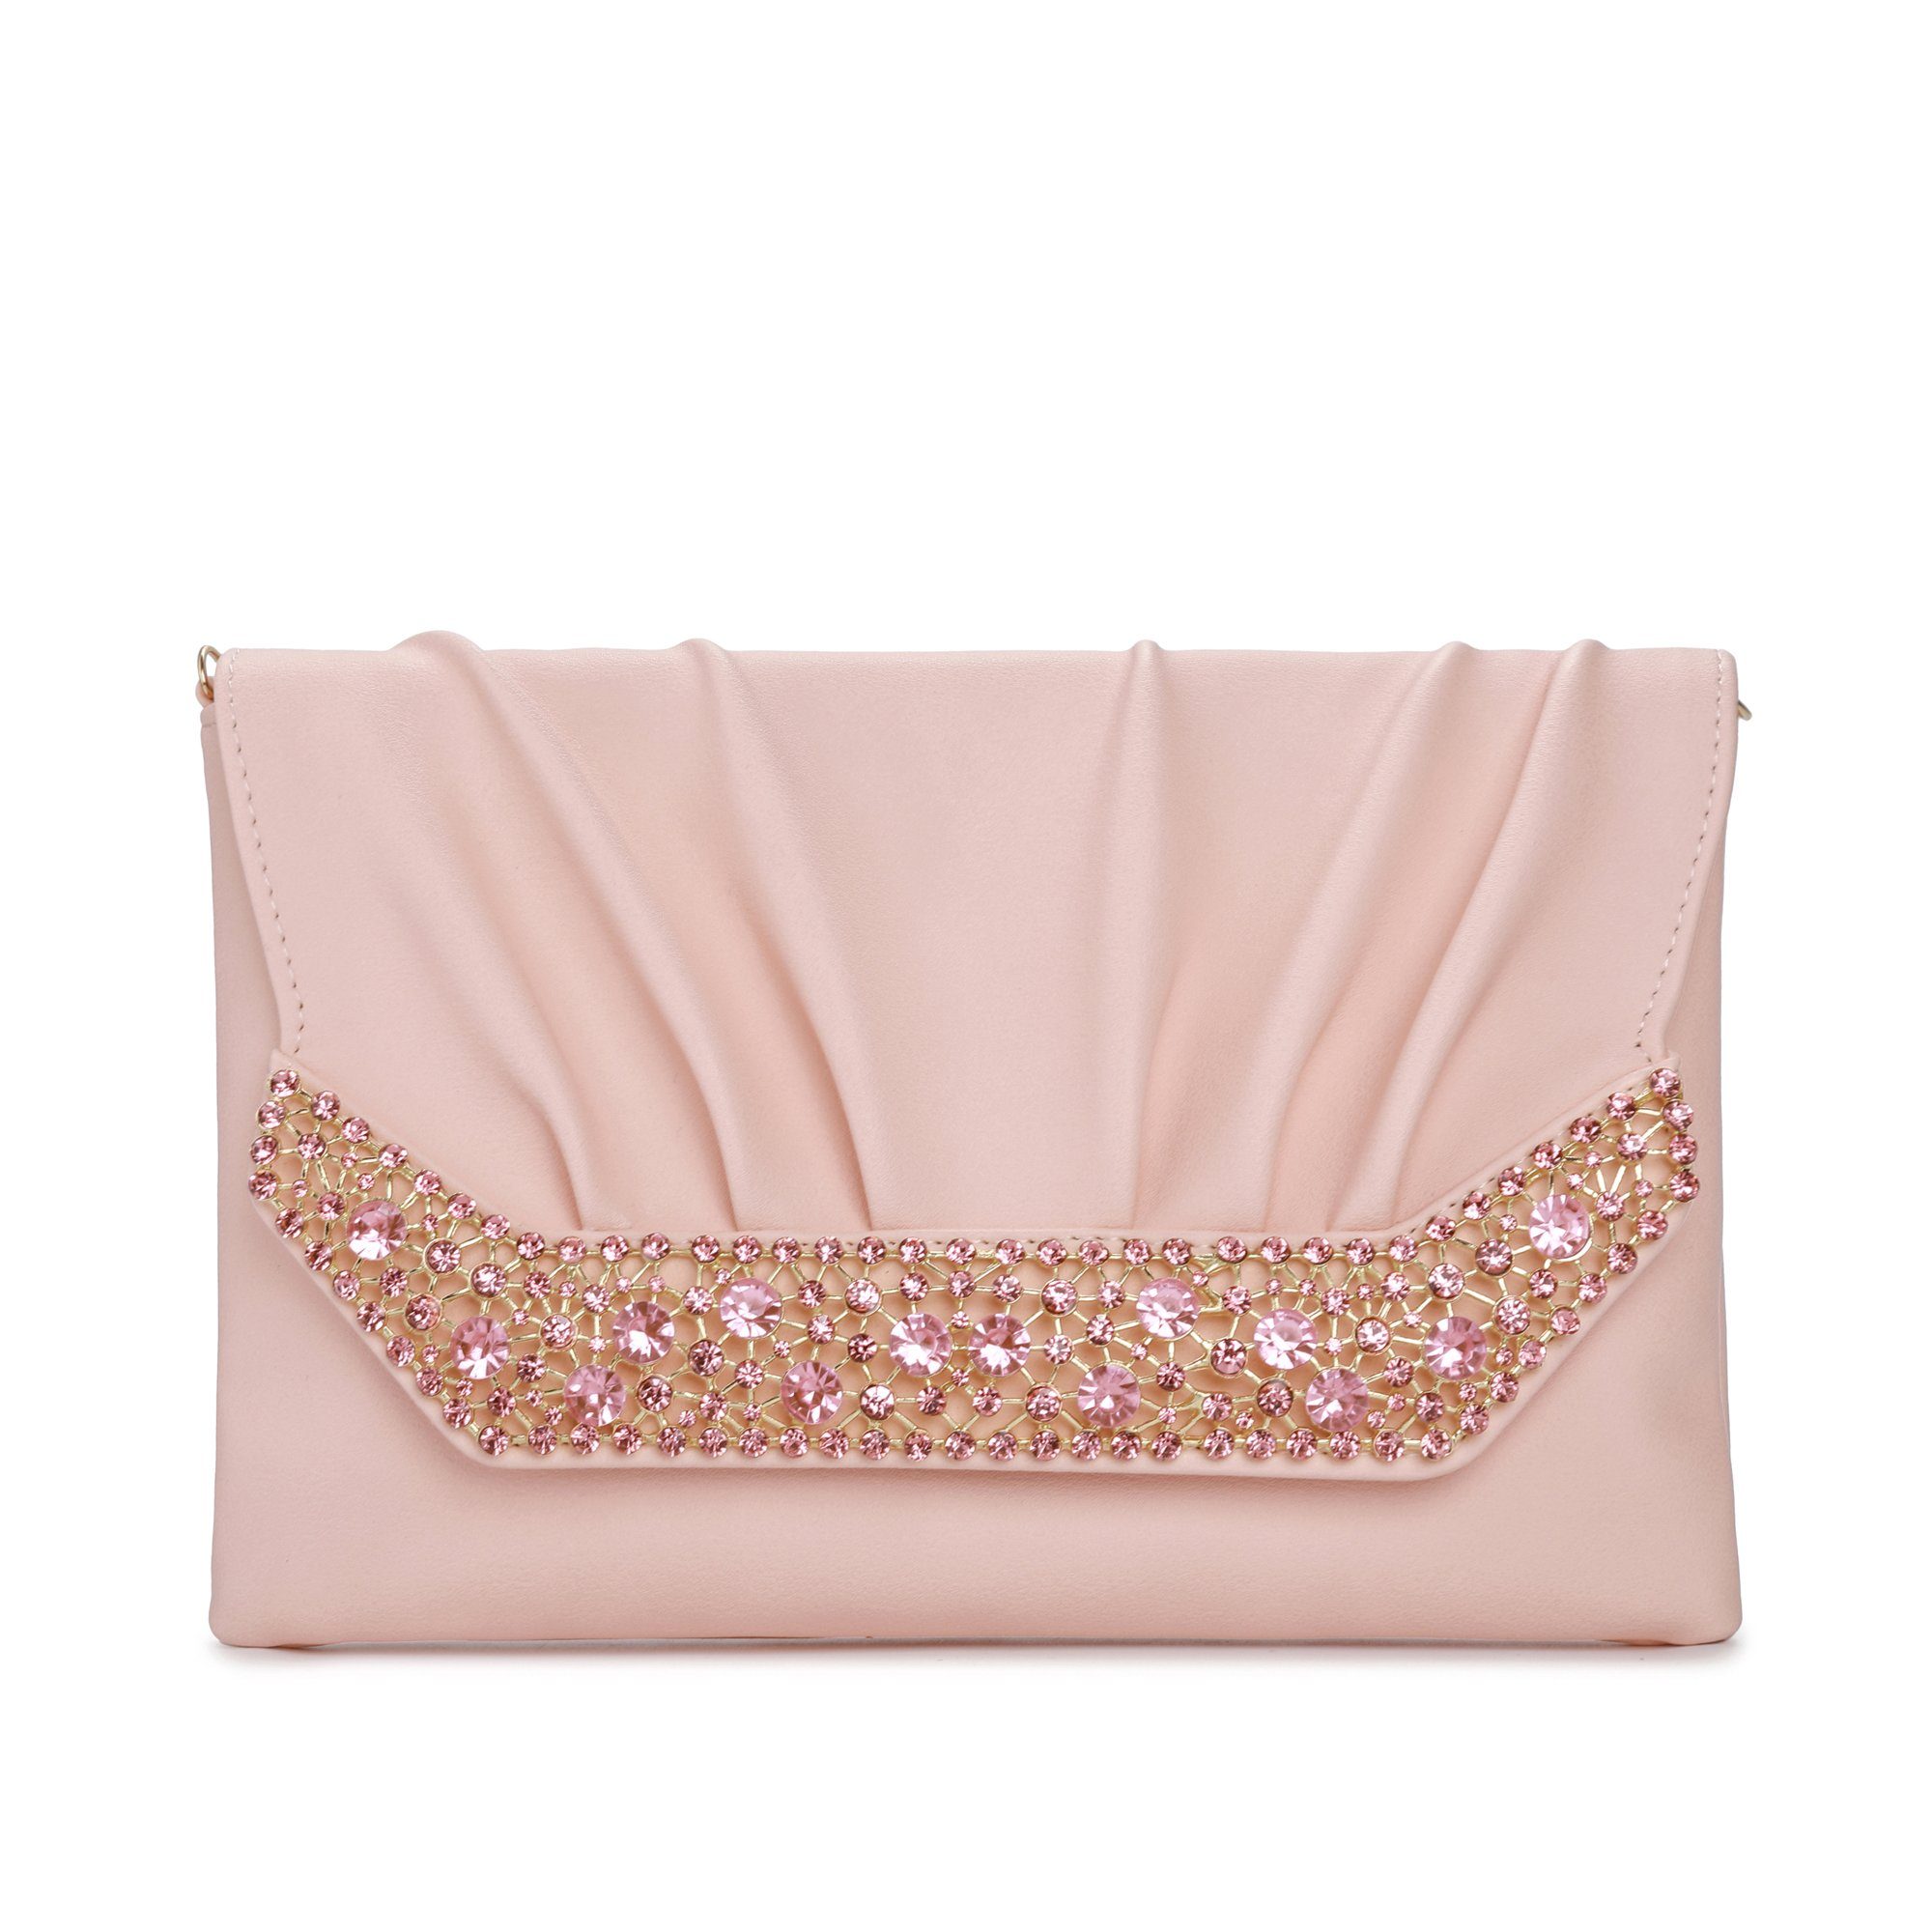 Evening Clutches Bags for Women, Envelope Clutch Wedding Purses With Chain Cross Body Shoulder Bag for Party Prom (Pink)